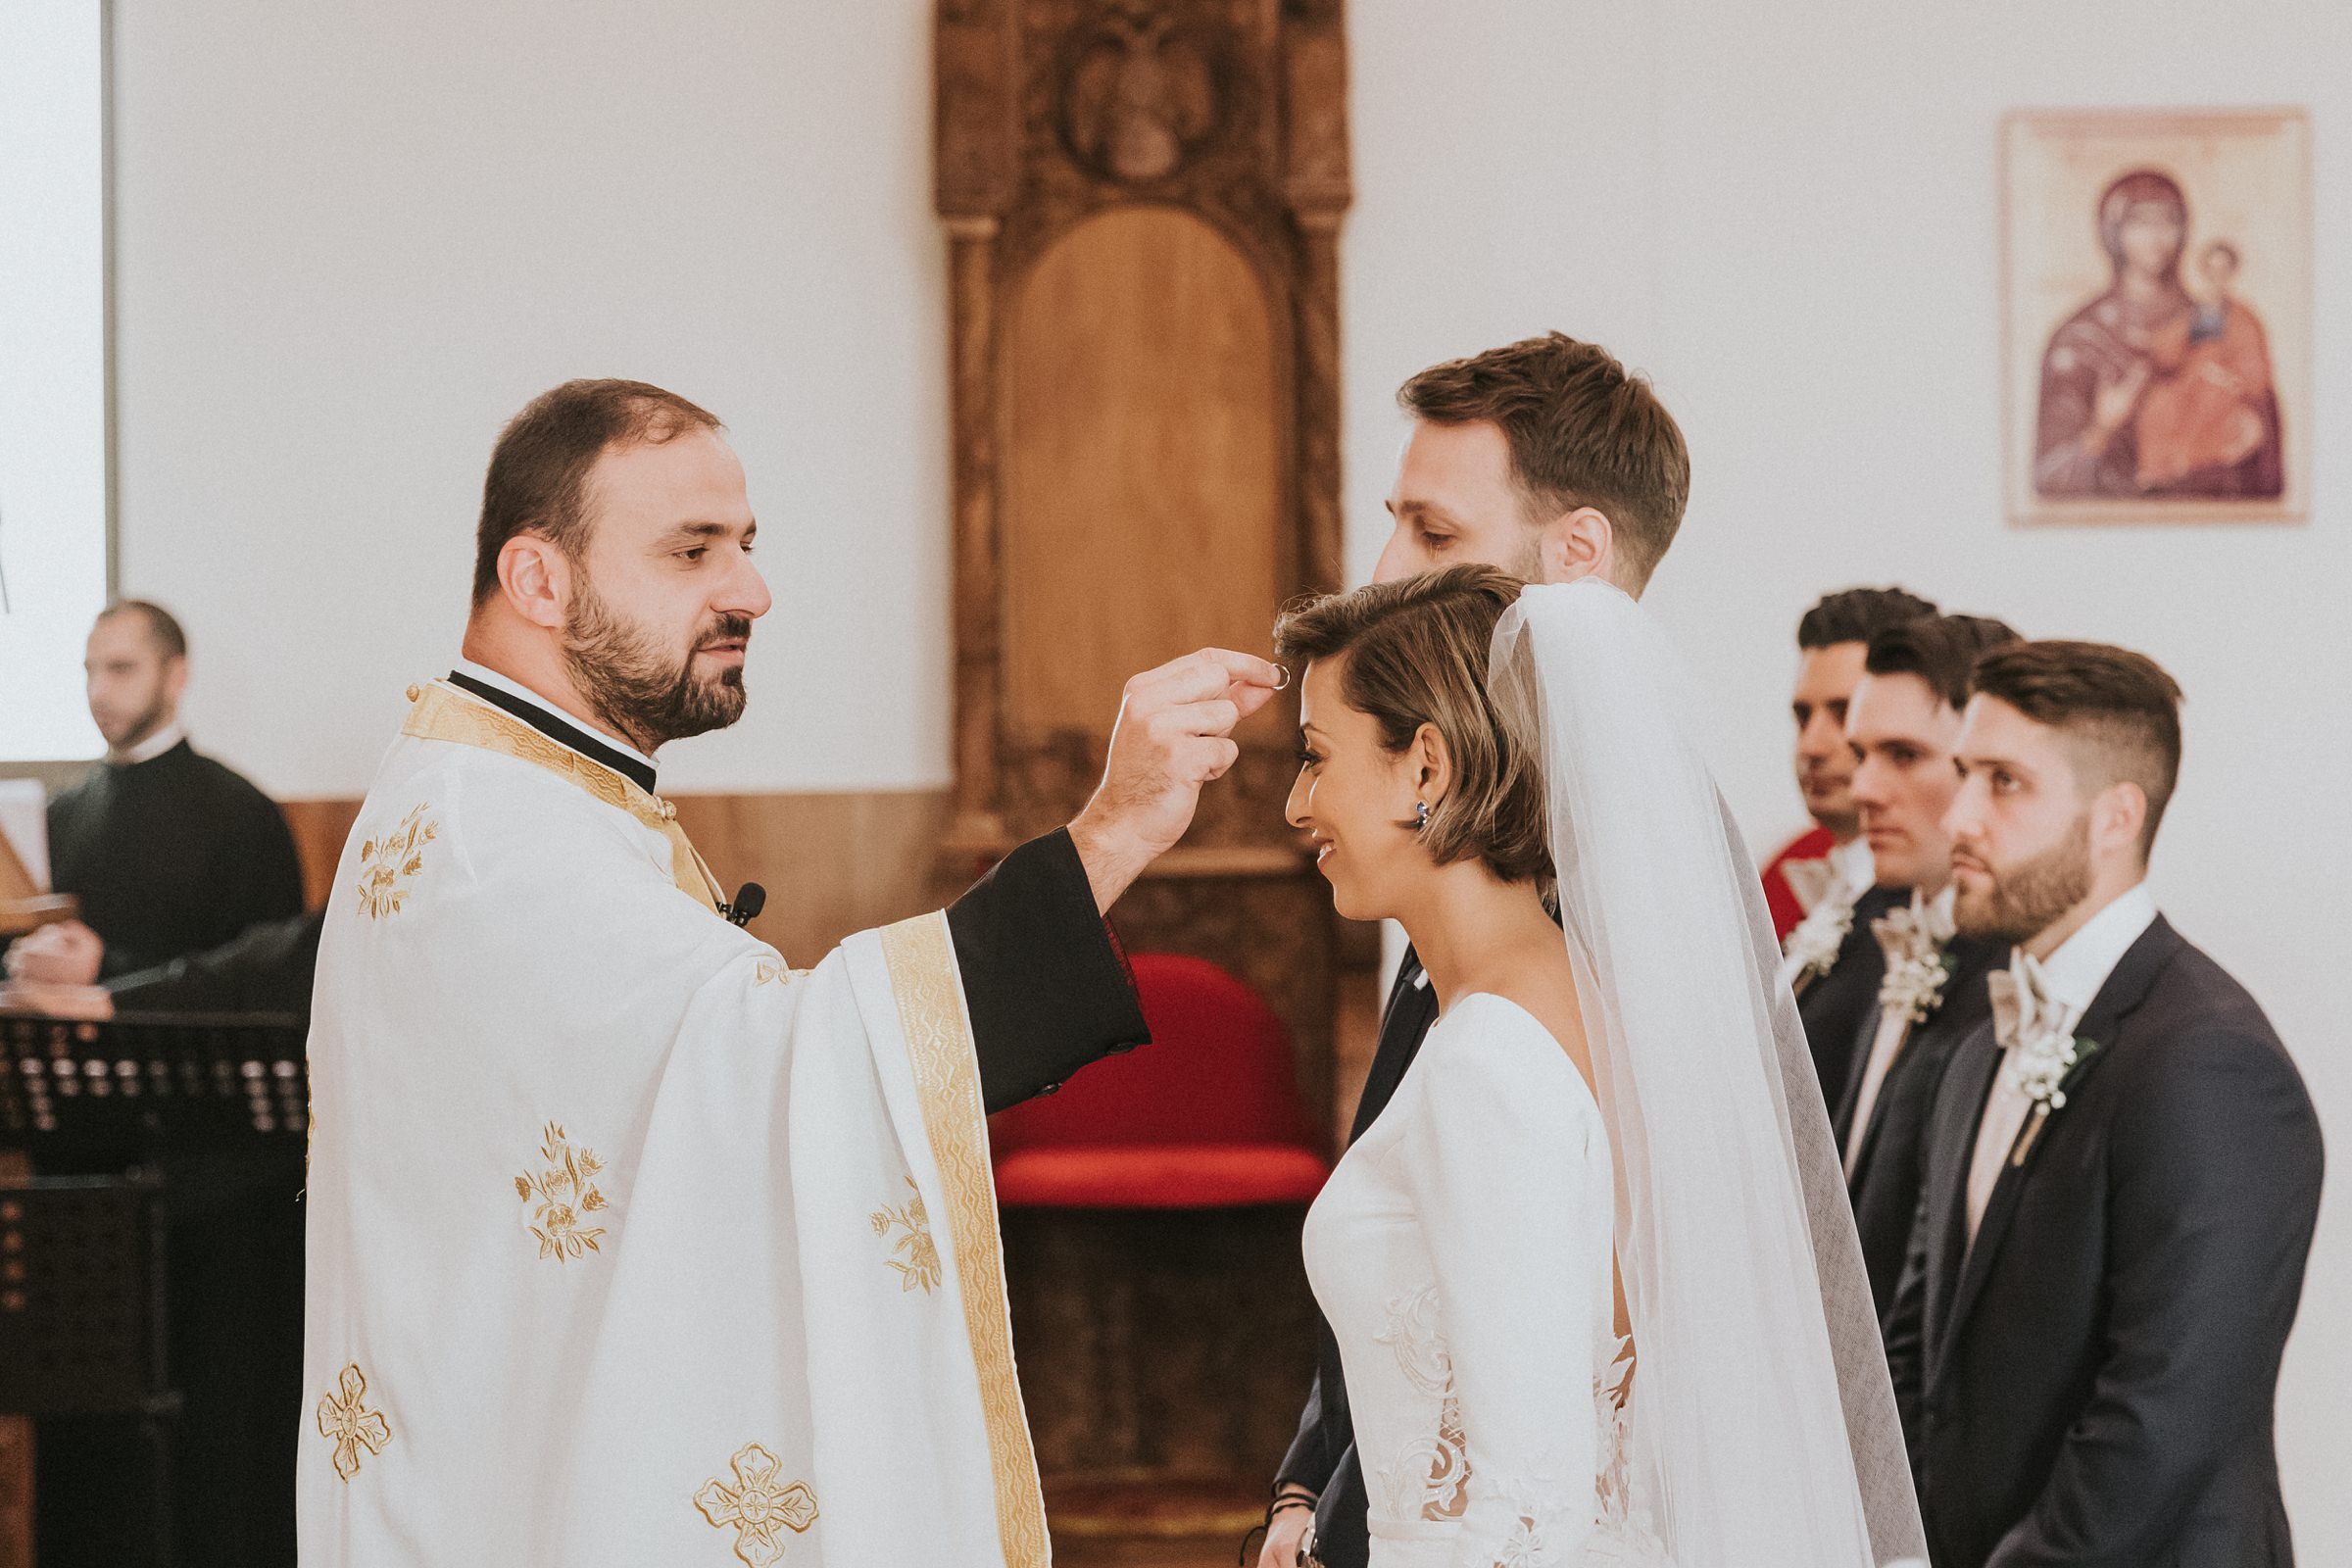 exchanging wedding rings during orthodox wedding ceremony